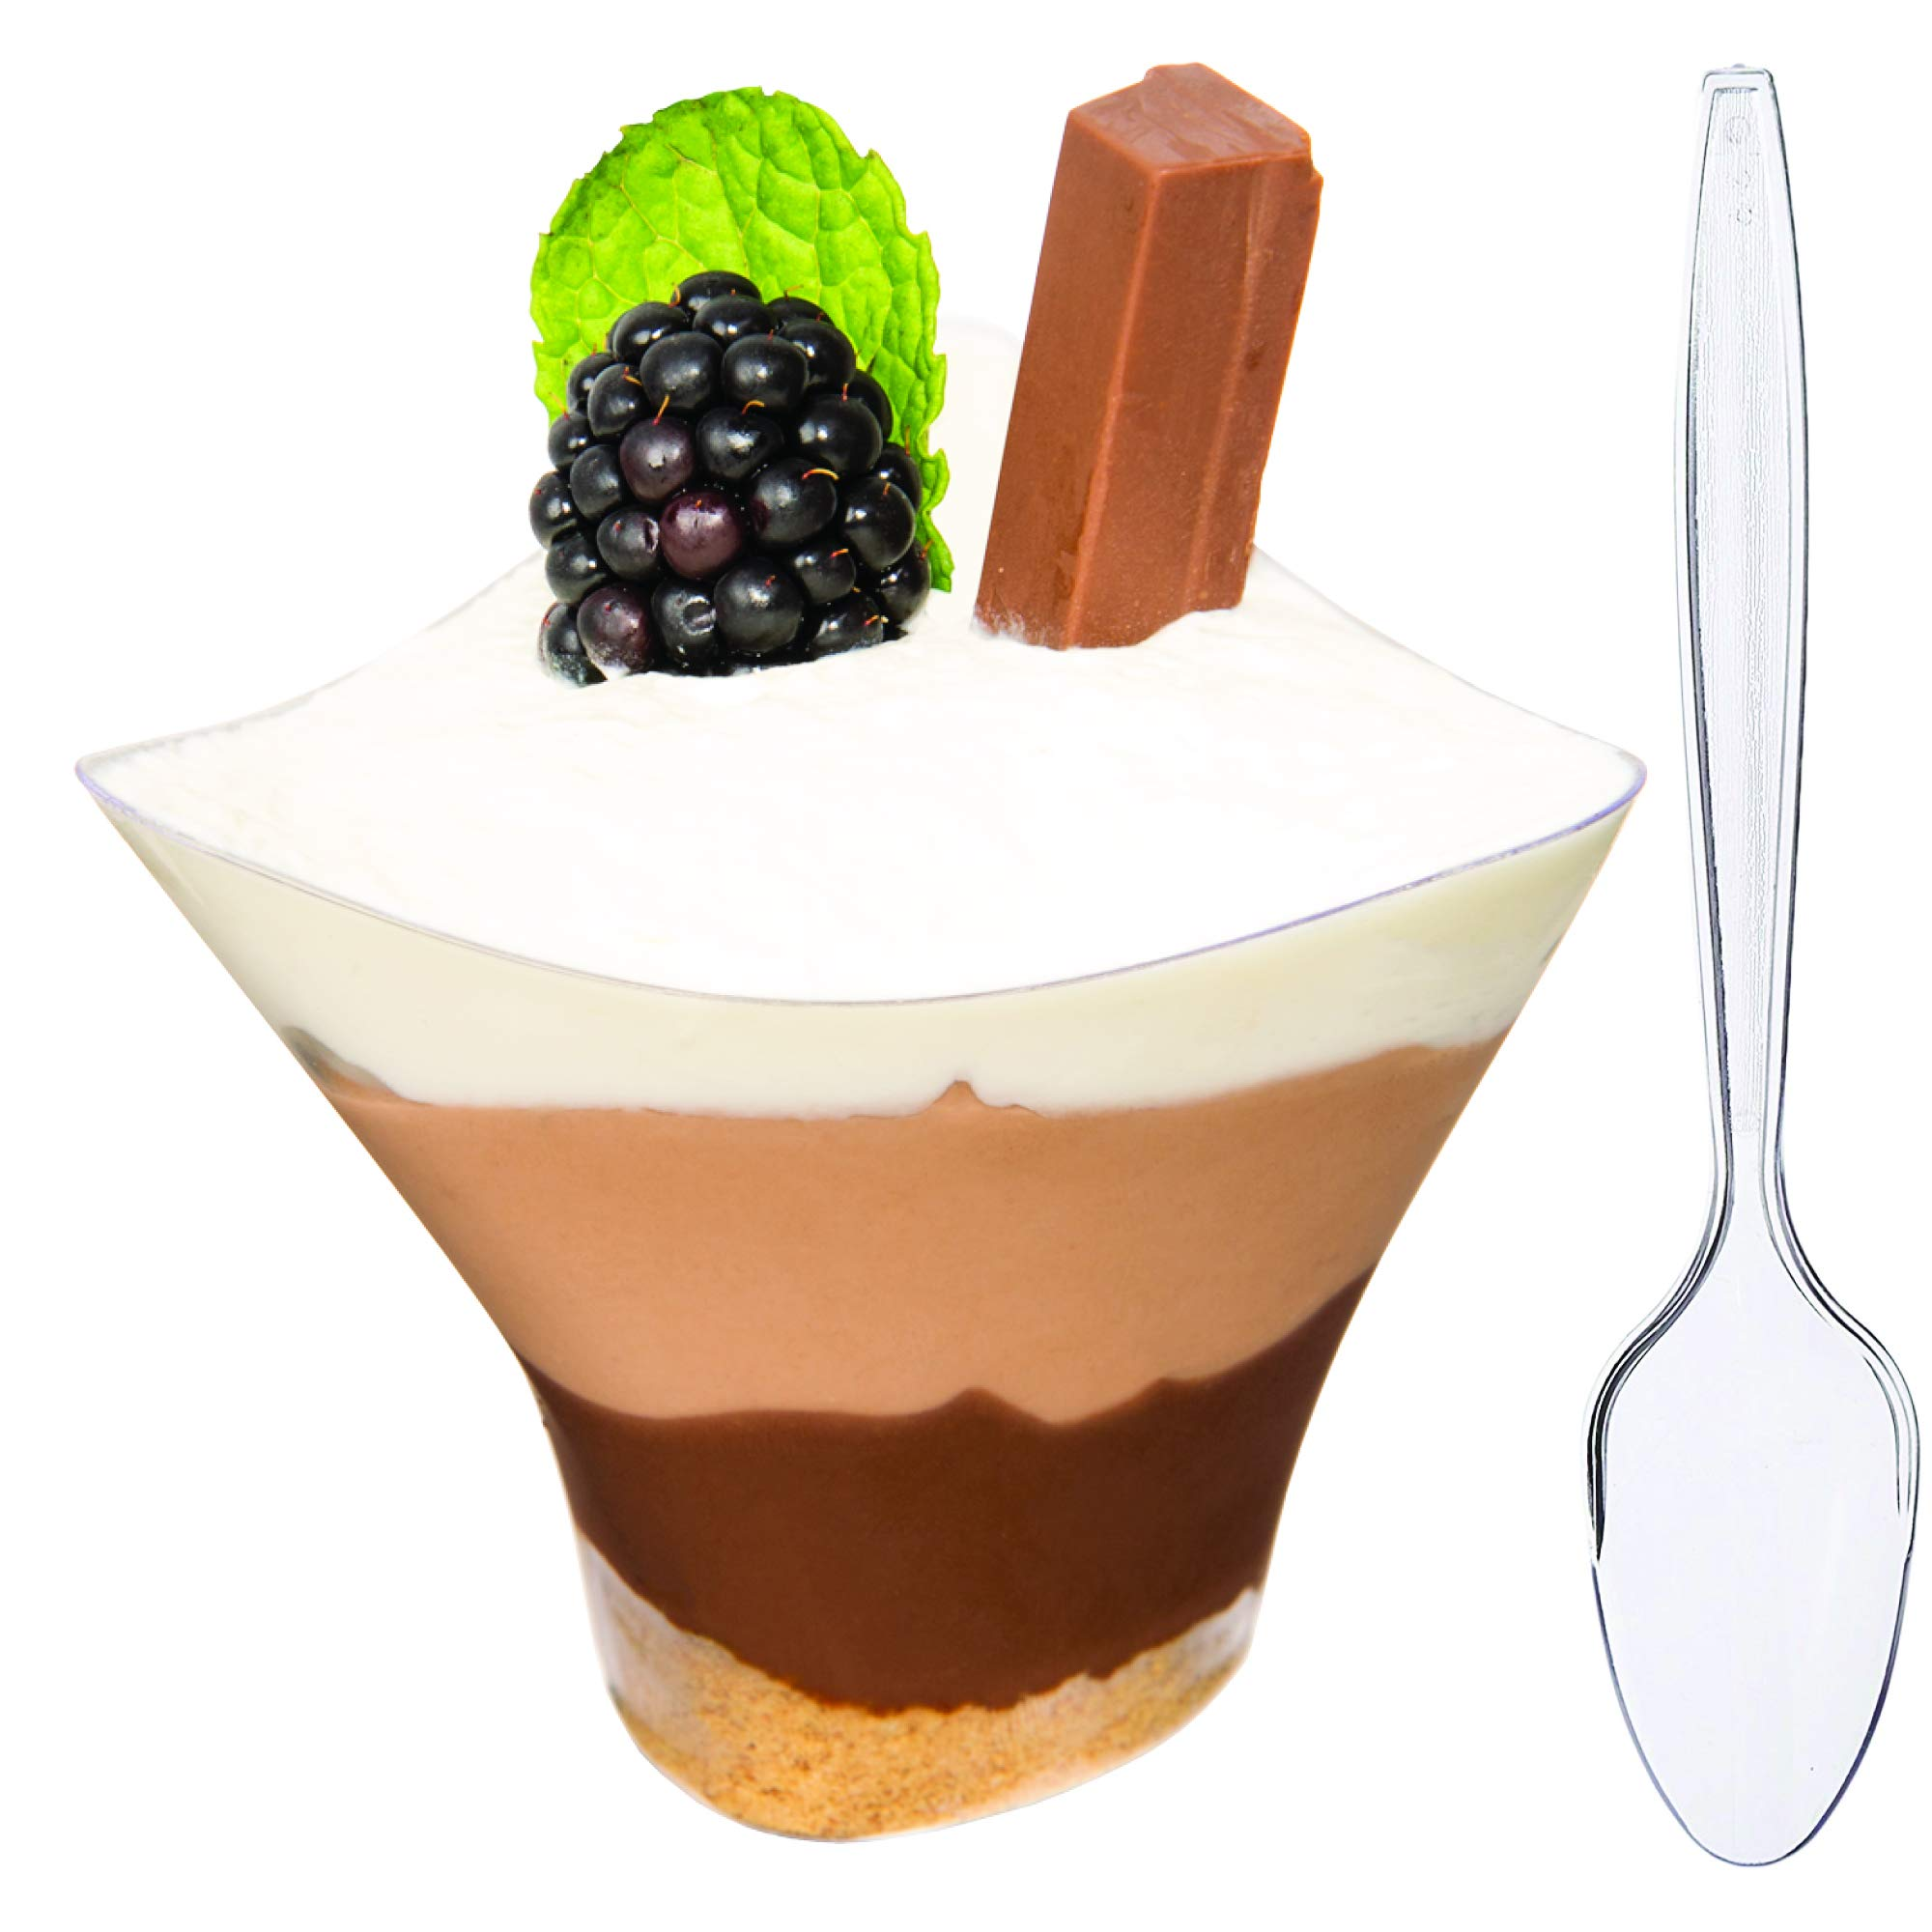 DLux 60 x 5 oz Mini Dessert Cups with Spoons, Large Swirl - Clear Plastic Parfait Appetizer Cup - Small Disposable Reusable Serving Bowl for Tasting Party Desserts Appetizers - With Recipe Ebook